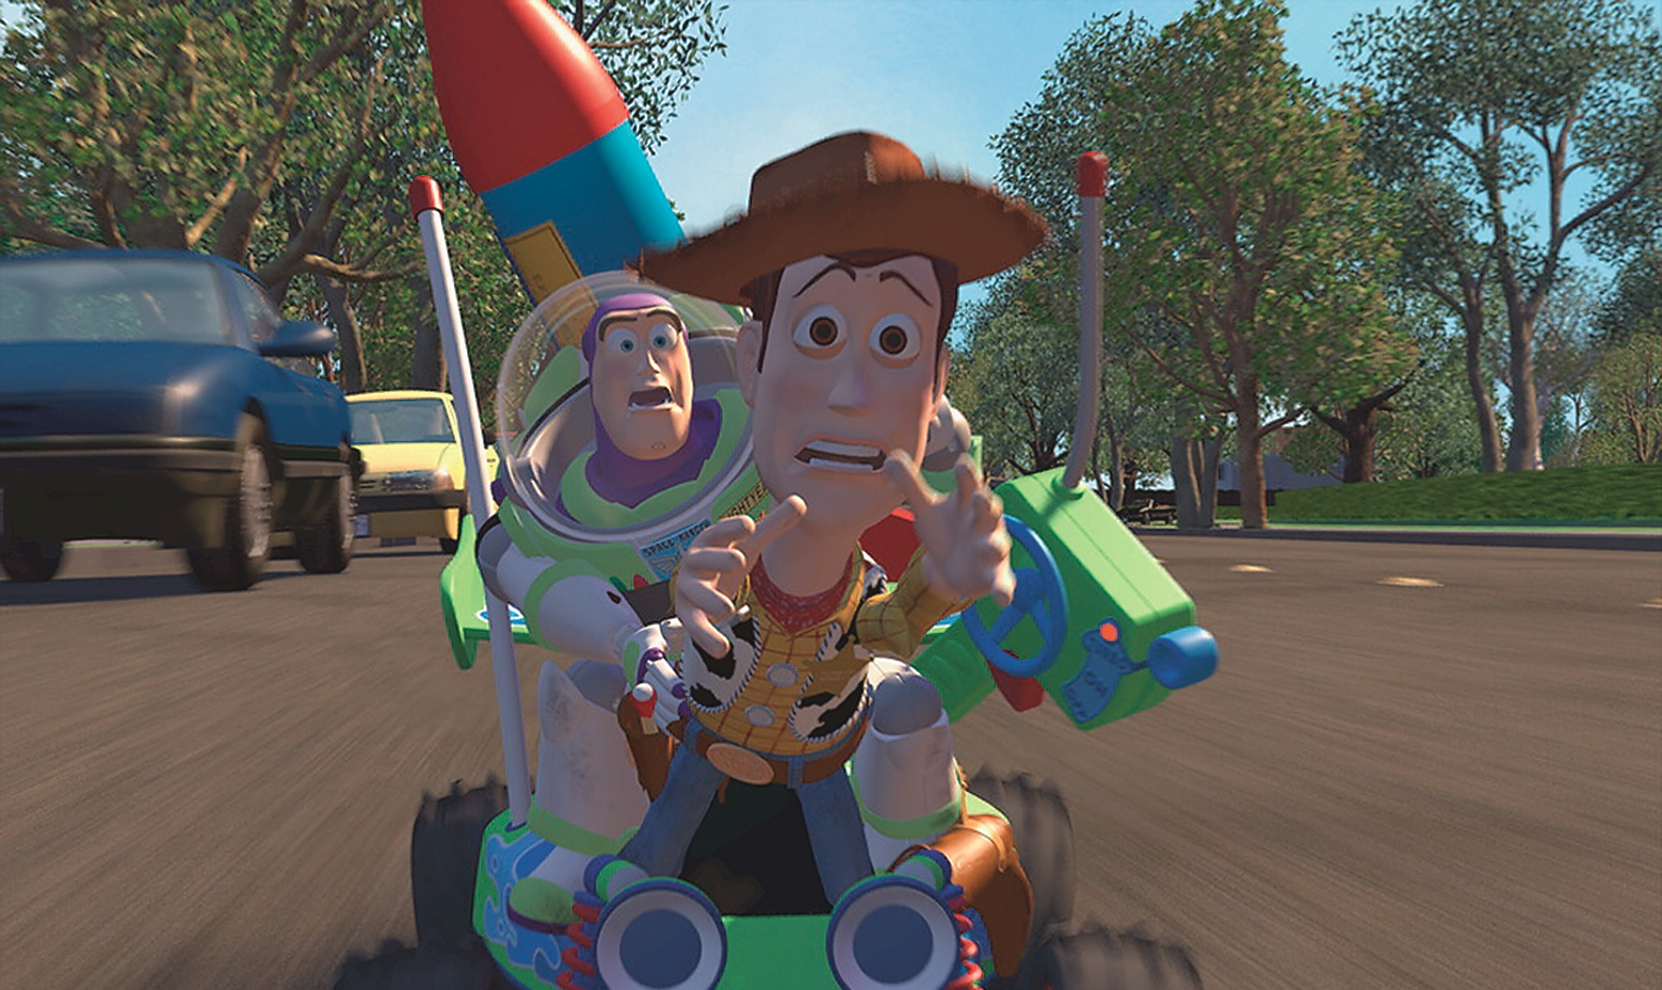 'Toy Story' Named One Of The Greatest Movies Of All-Time By Entertainment Weekly